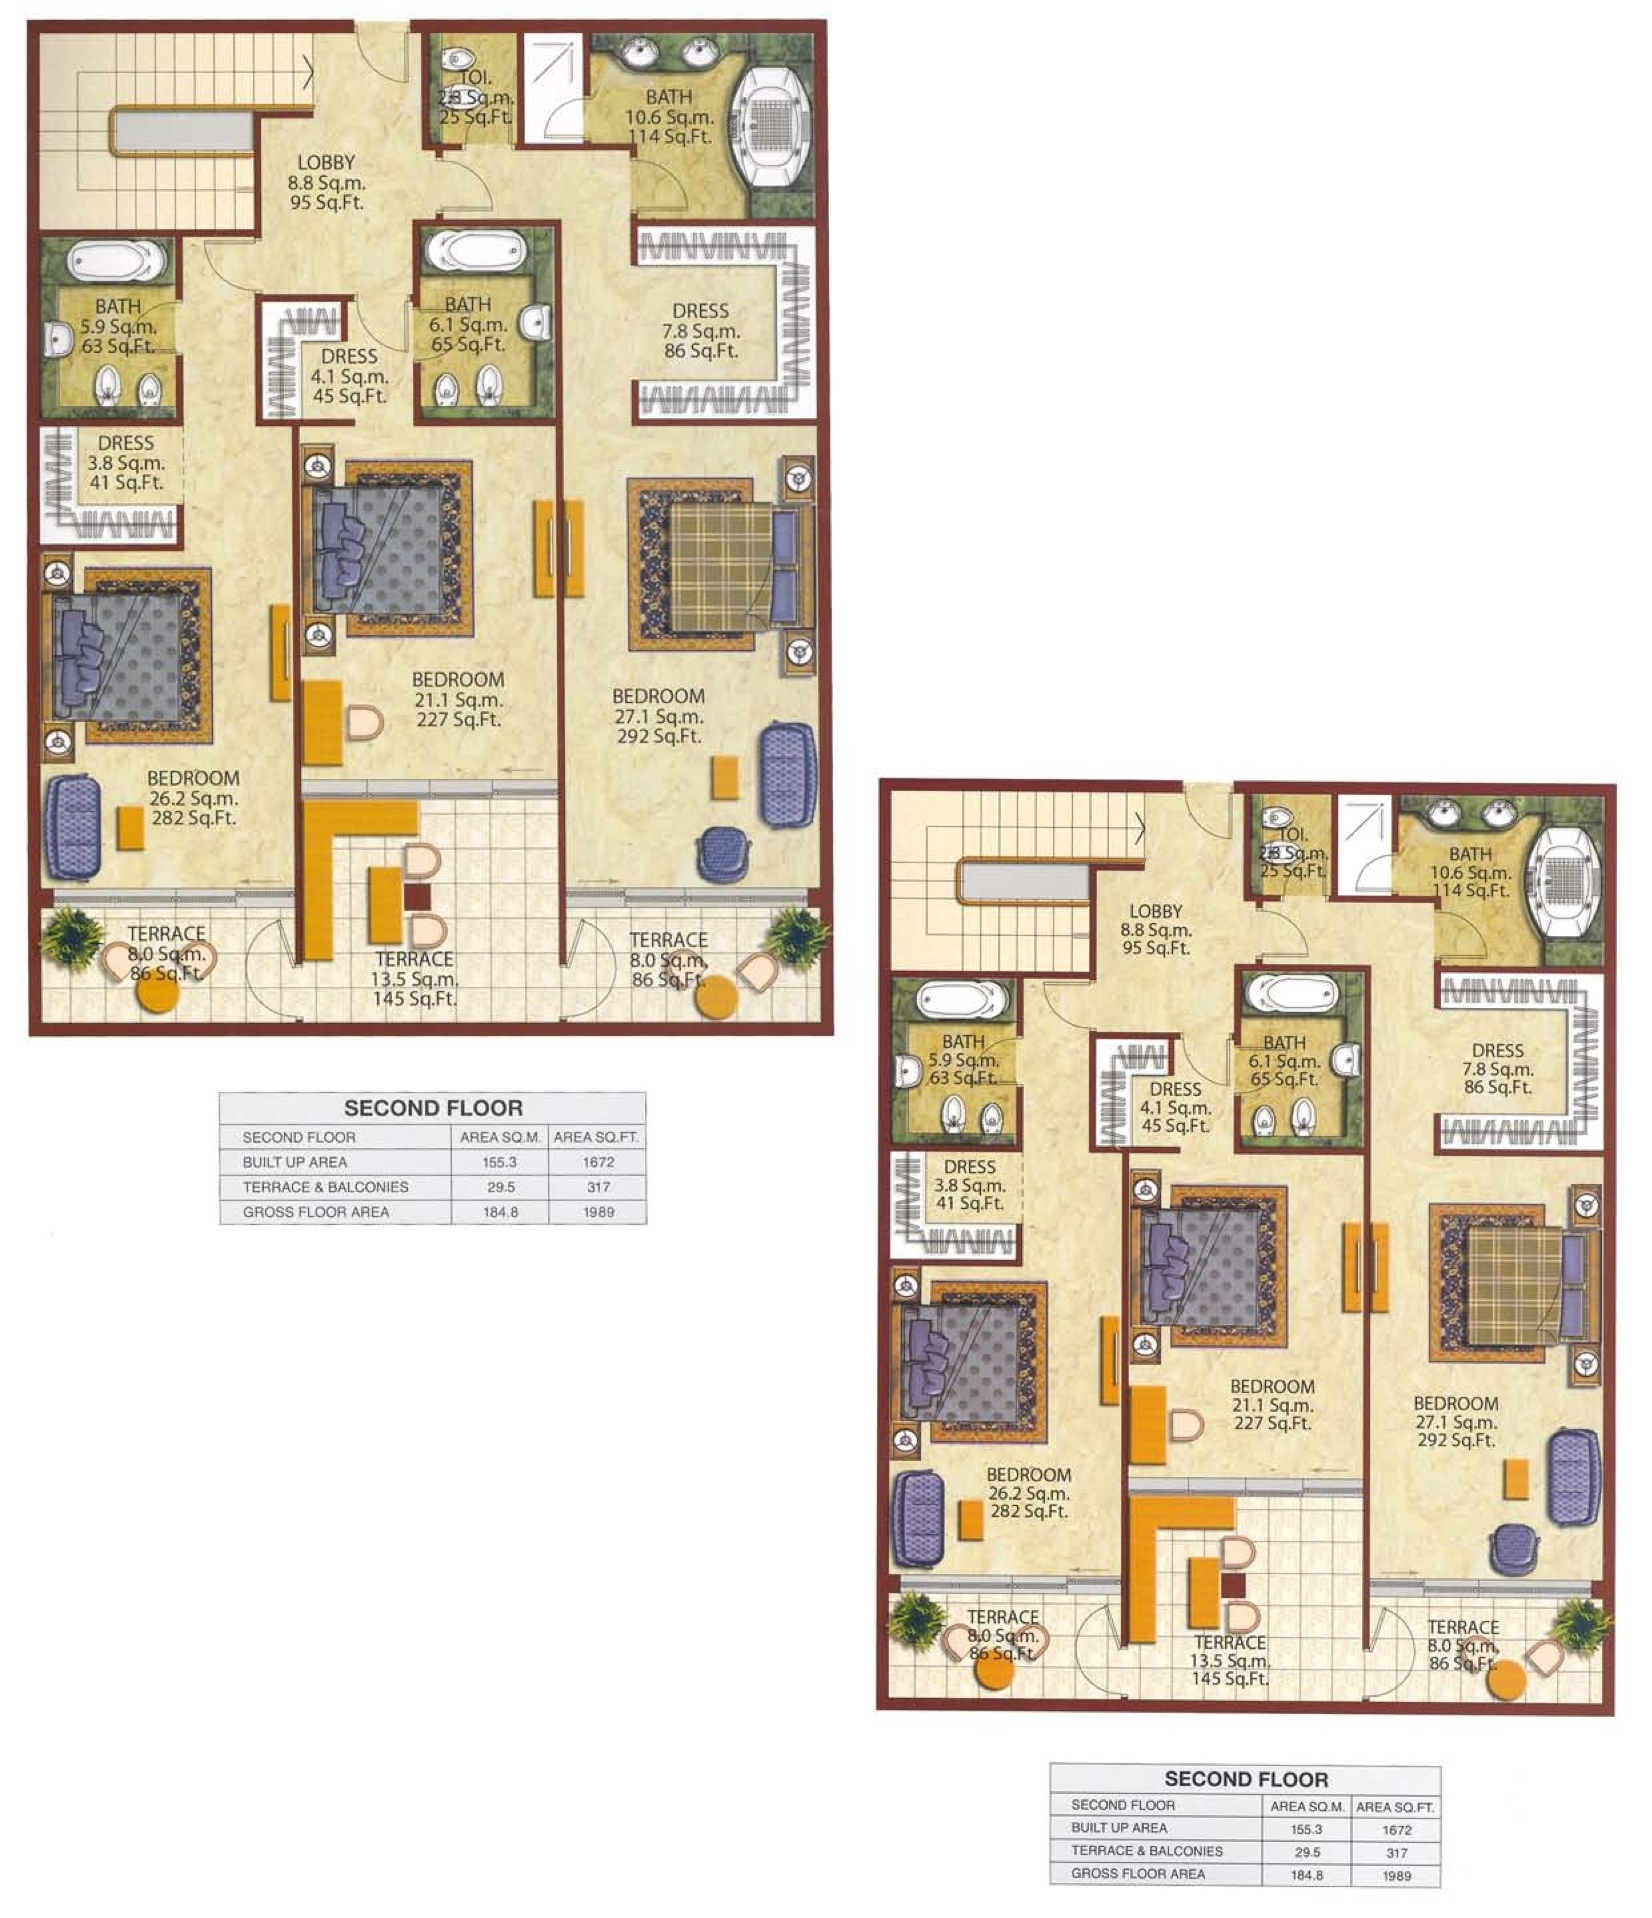 Kempinski Residences Townhouse Floor Plans Palm Jumeirah